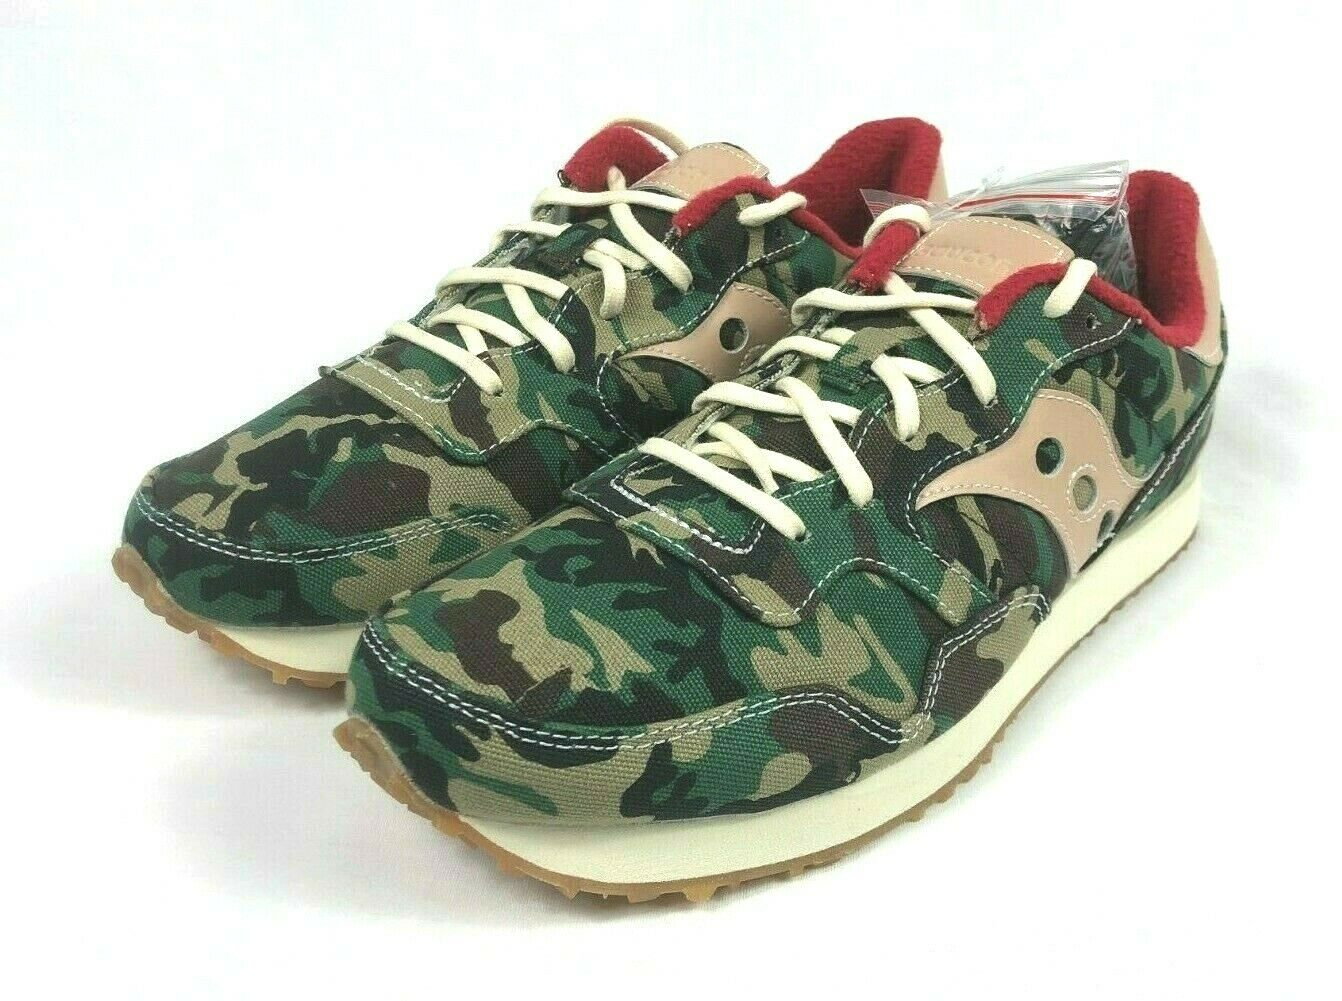 SAUCONY DXN TRAINER LODGE PACK CAMO CAMO CAMO SZ 10.5 DS 100% AUTHENTIC WITH RECEIPT b0b9e7